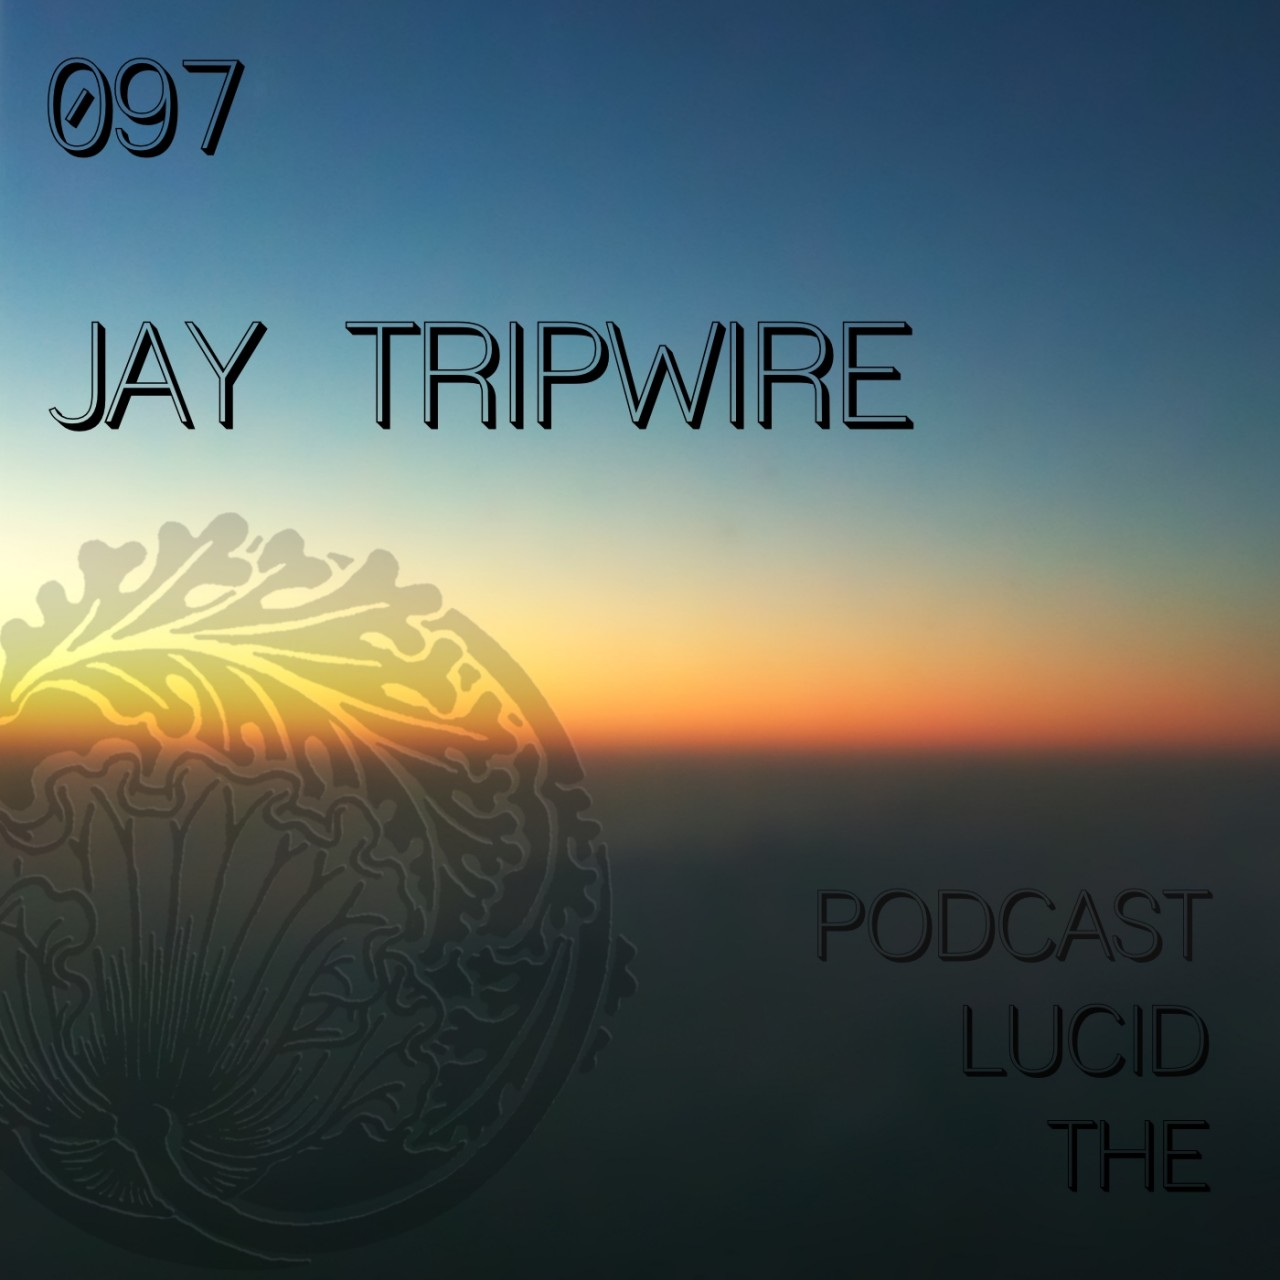 The Lucid Podcast 097 Jay Tripwire